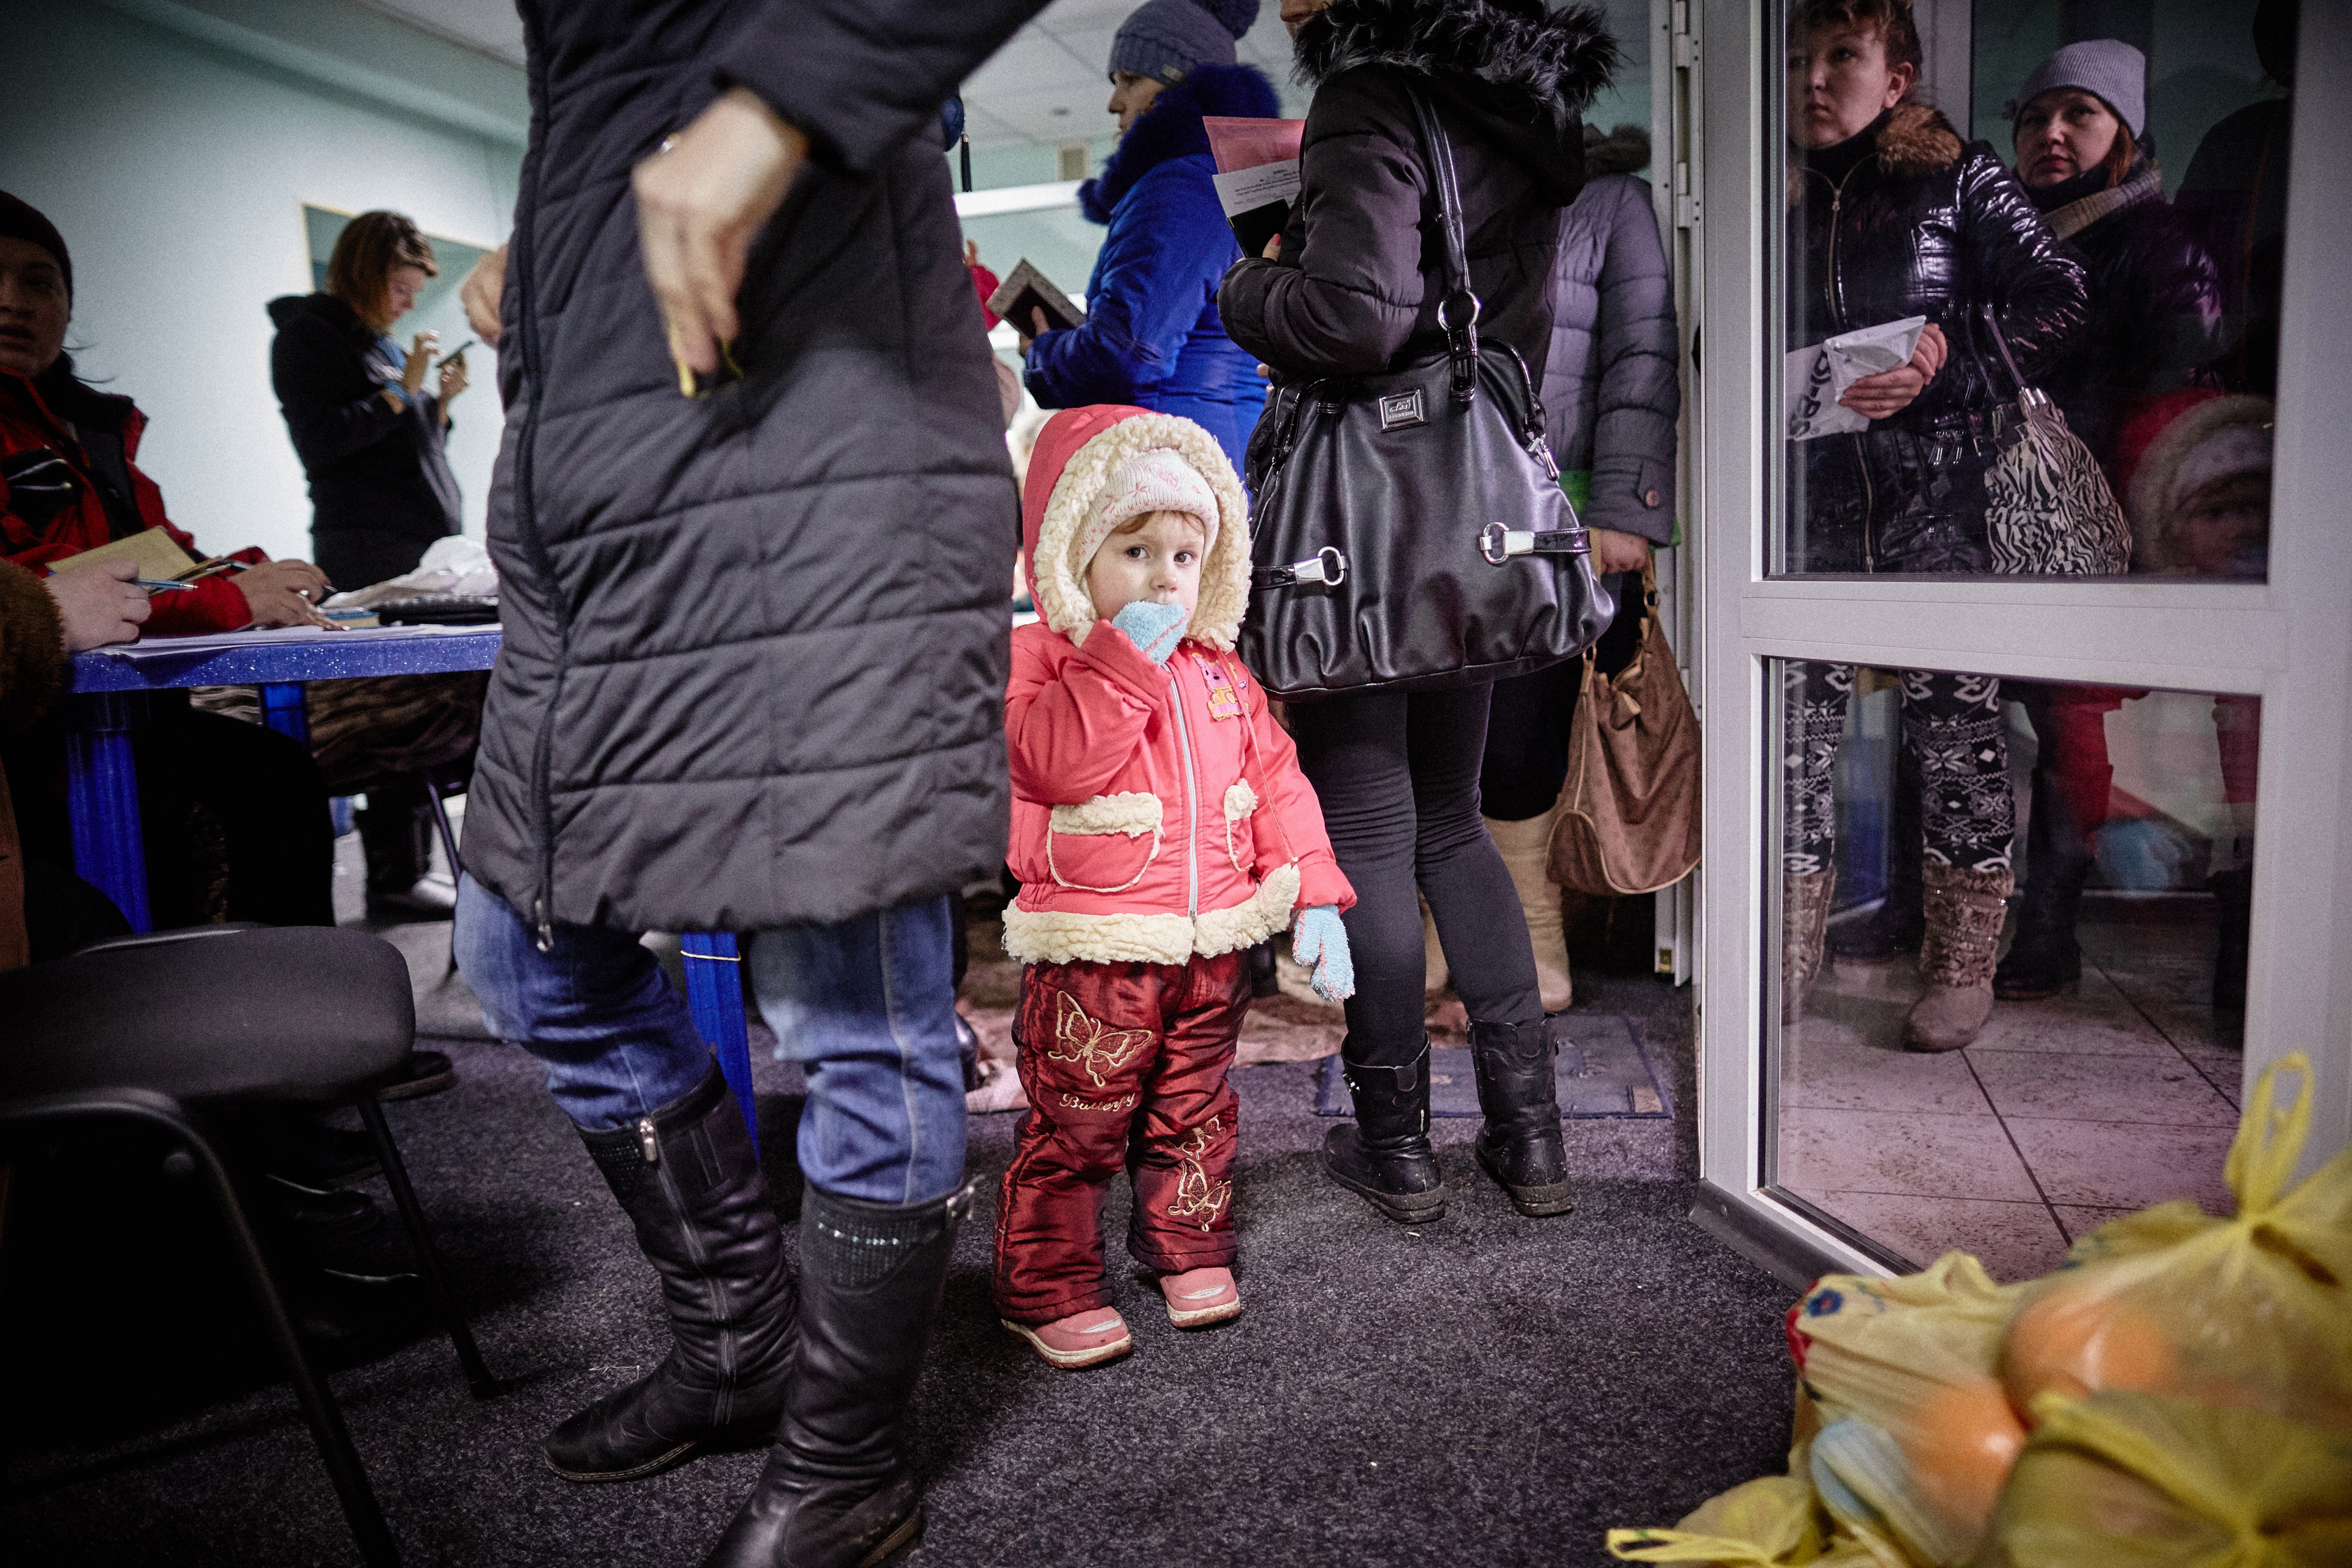 The everyday life of displaced children in Ukraine: instead of attending kindergarten and playing with other children, they stand with their mothers in line for humanitarian aid. Kramatorsk, 4 February 2015.